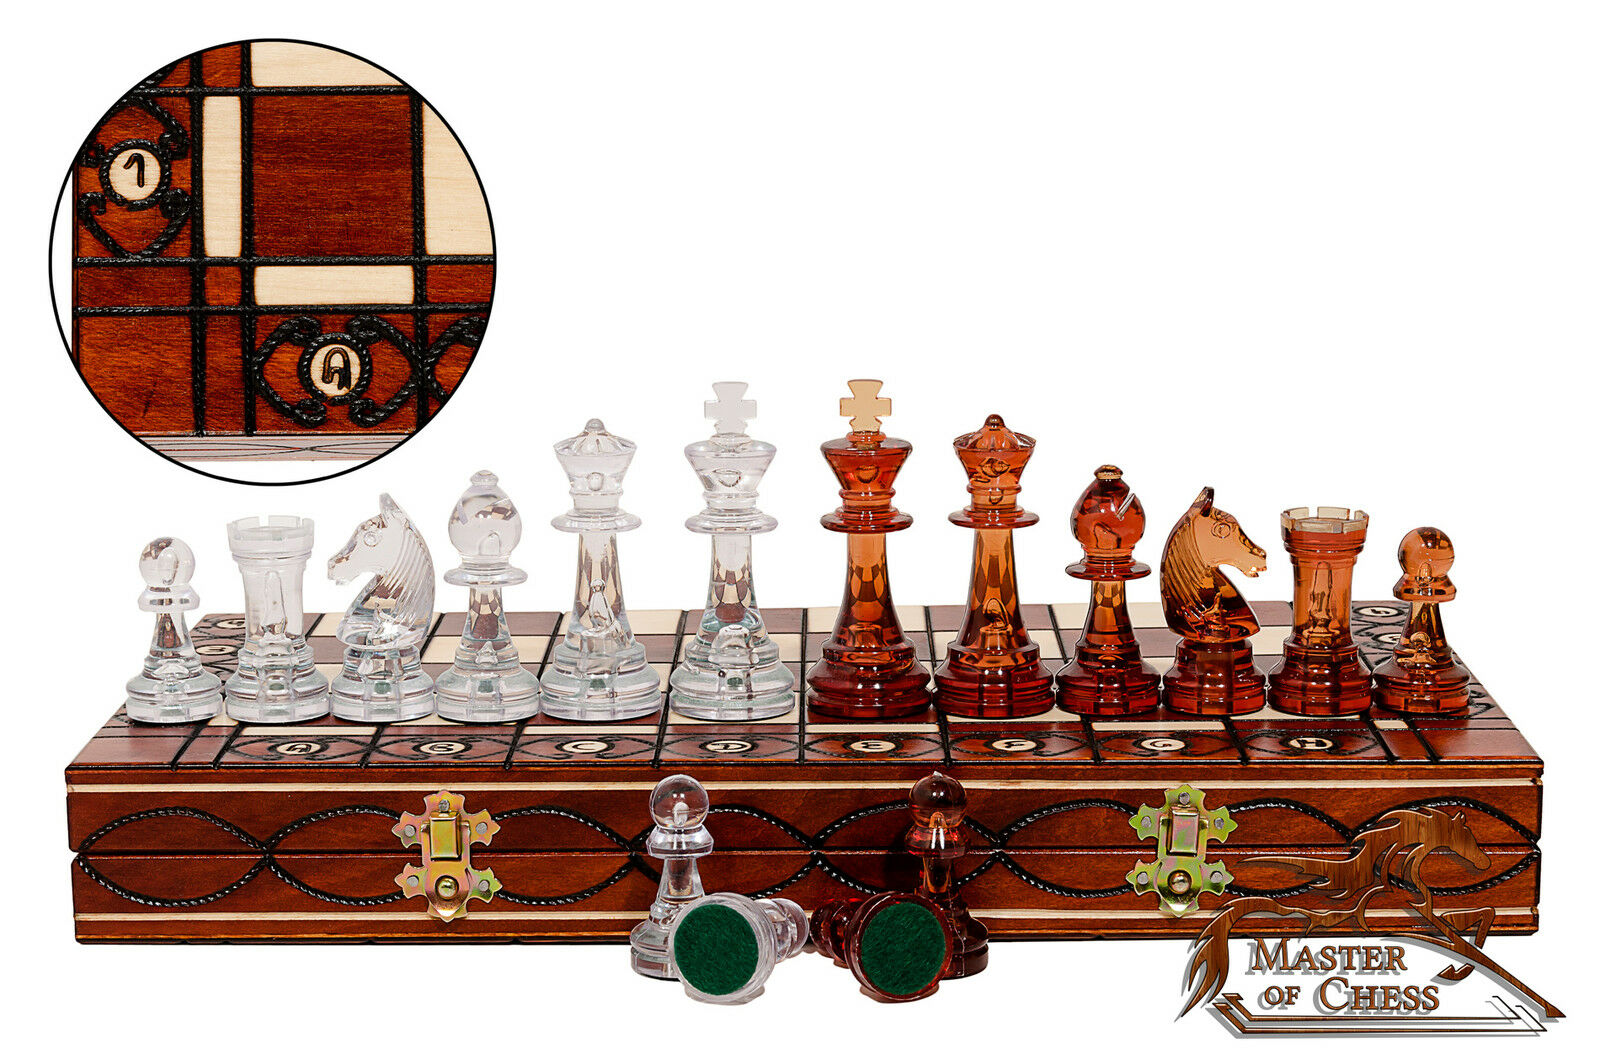 Amber decorative chess set 41cm stunning chessboard and unique staunton pieces eur 28 20 - Ornamental chess sets ...